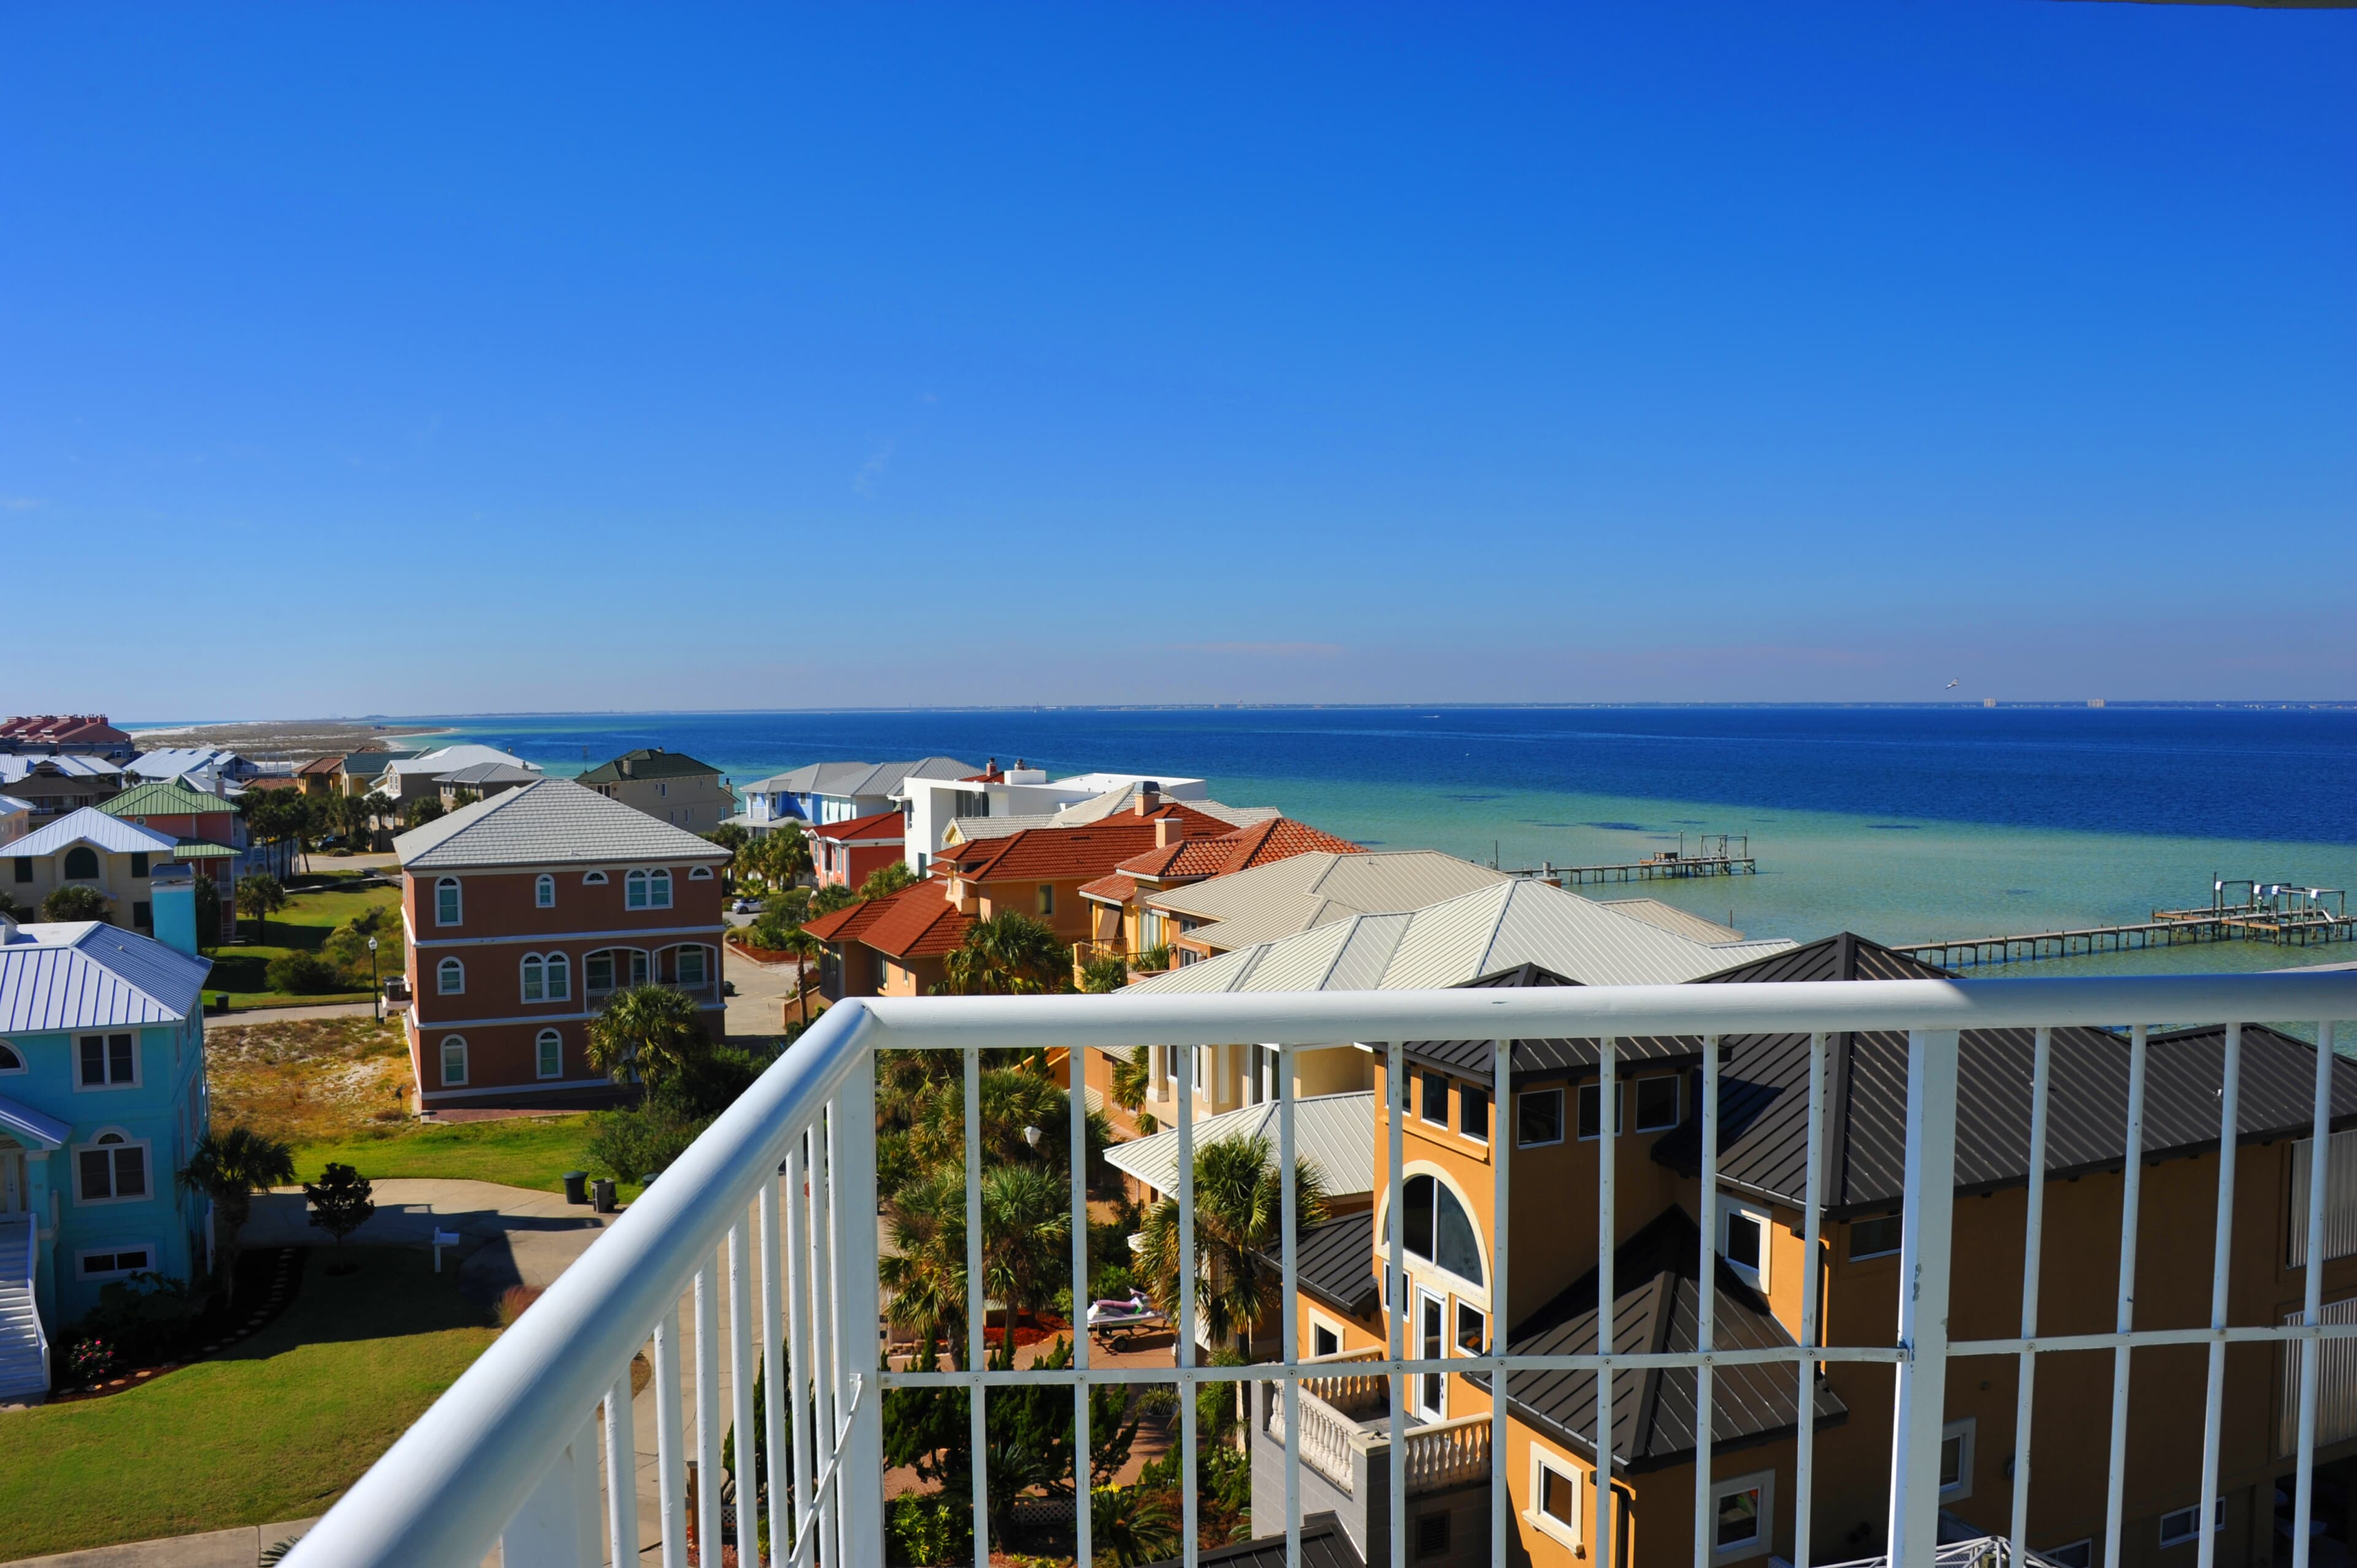 Tristan Towers #5B Condo rental in Tristan Towers ~ Pensacola Beach Condo Rentals by BeachGuide in Pensacola Beach Florida - #49